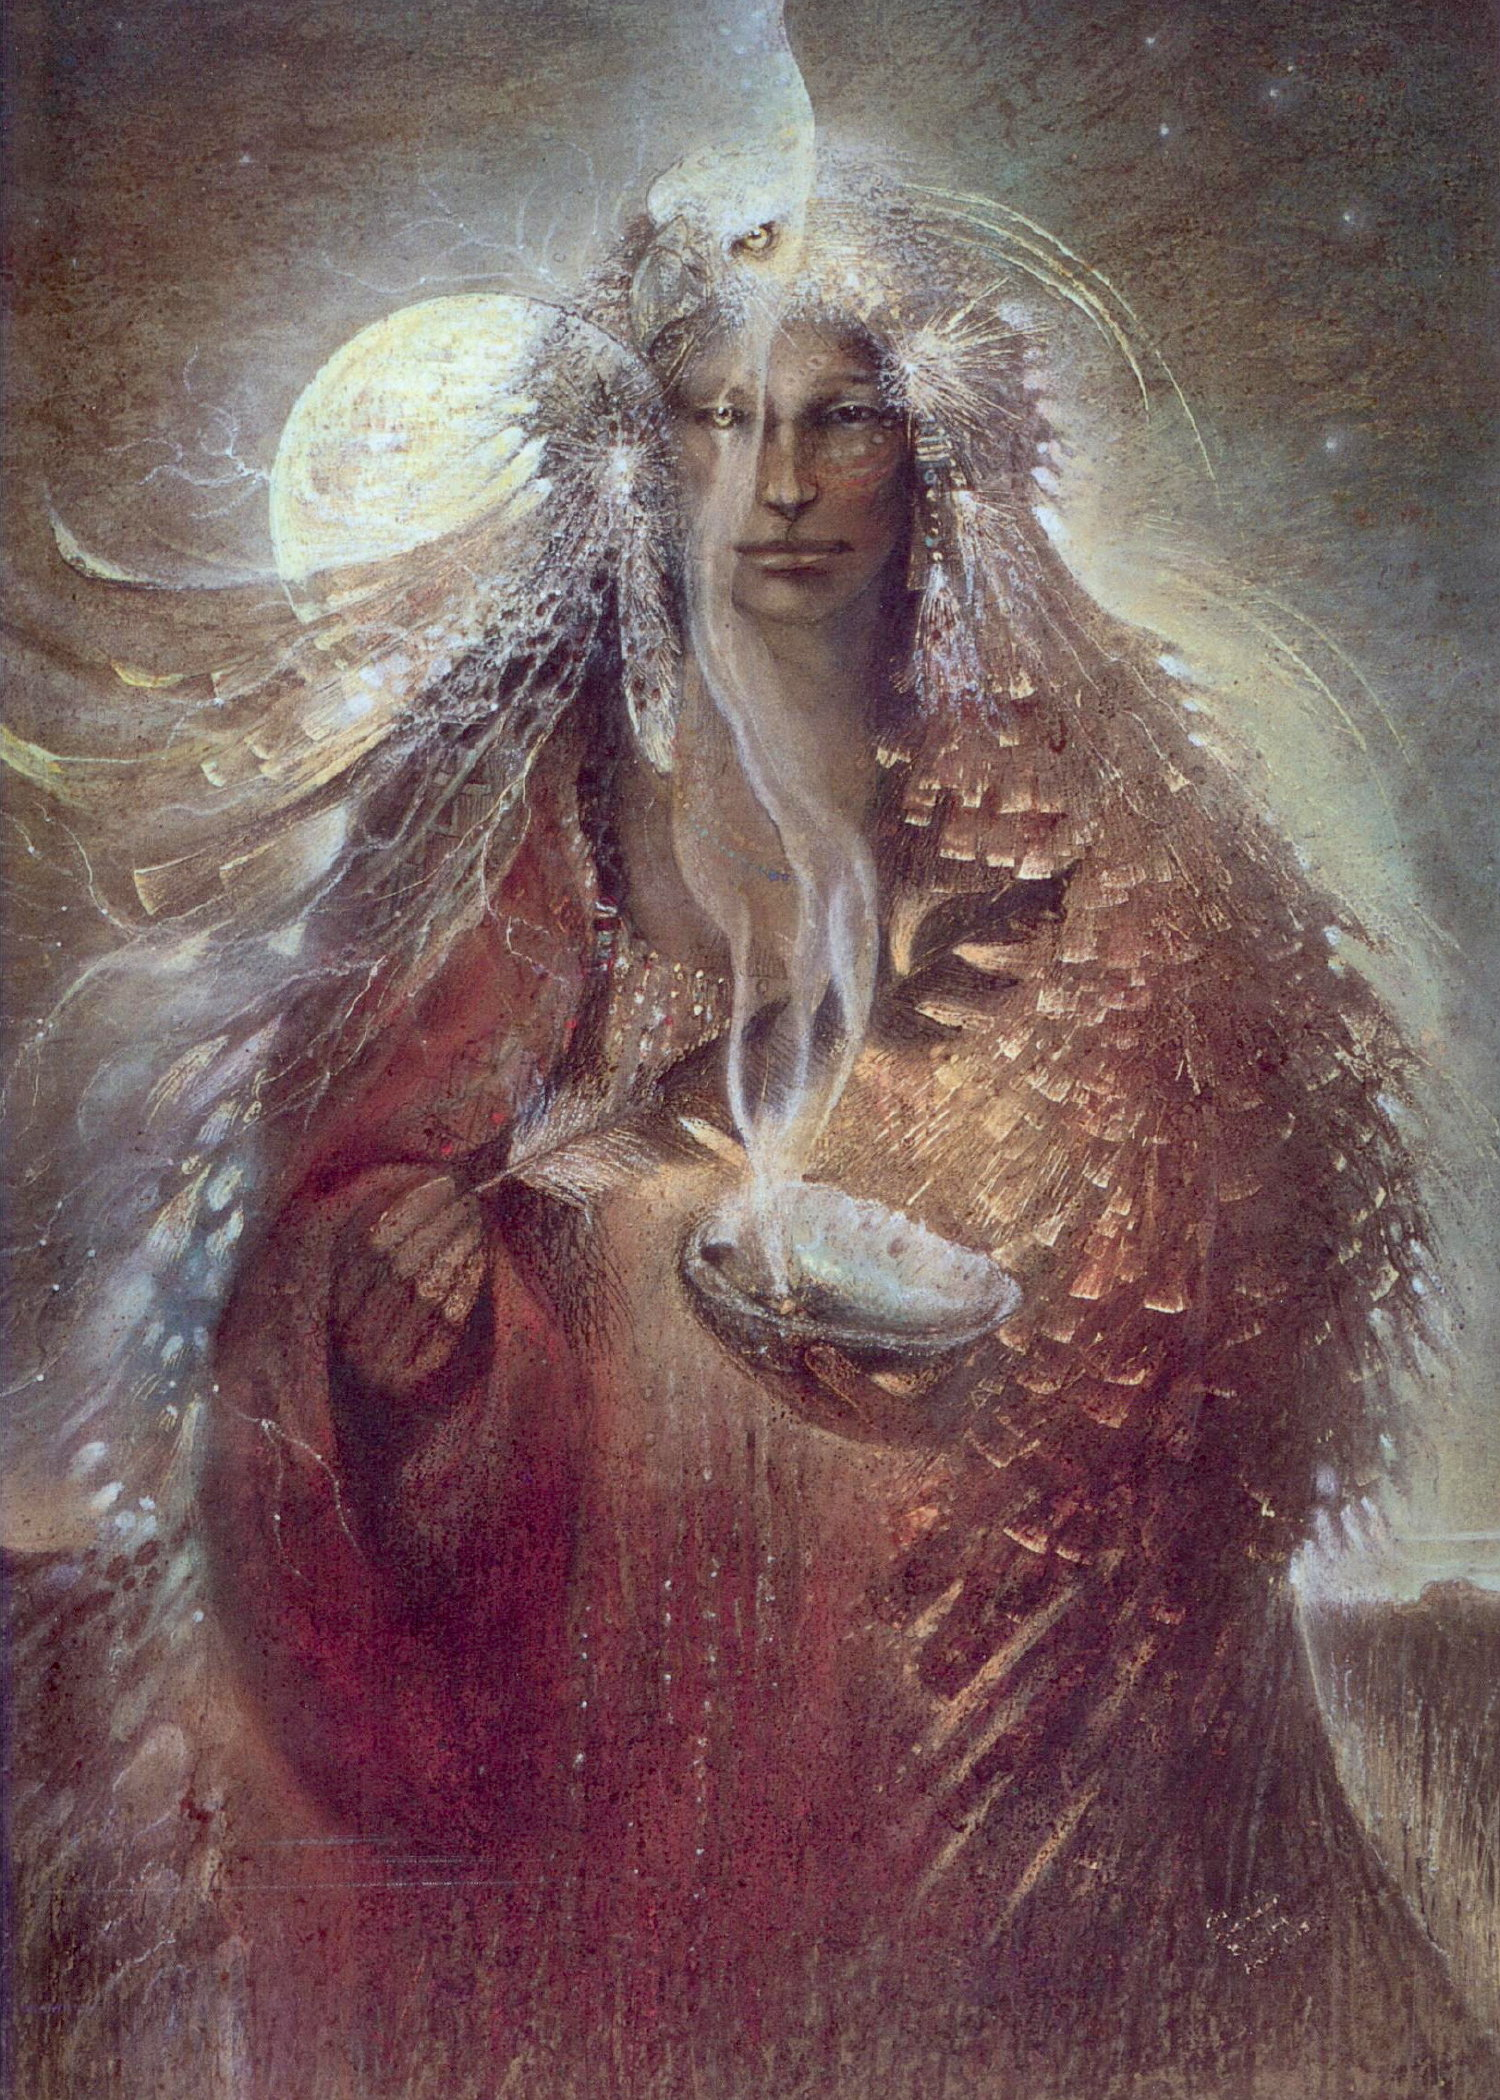 Painted image by Susan Sedan Boulet. Image of shaman woman smudging.